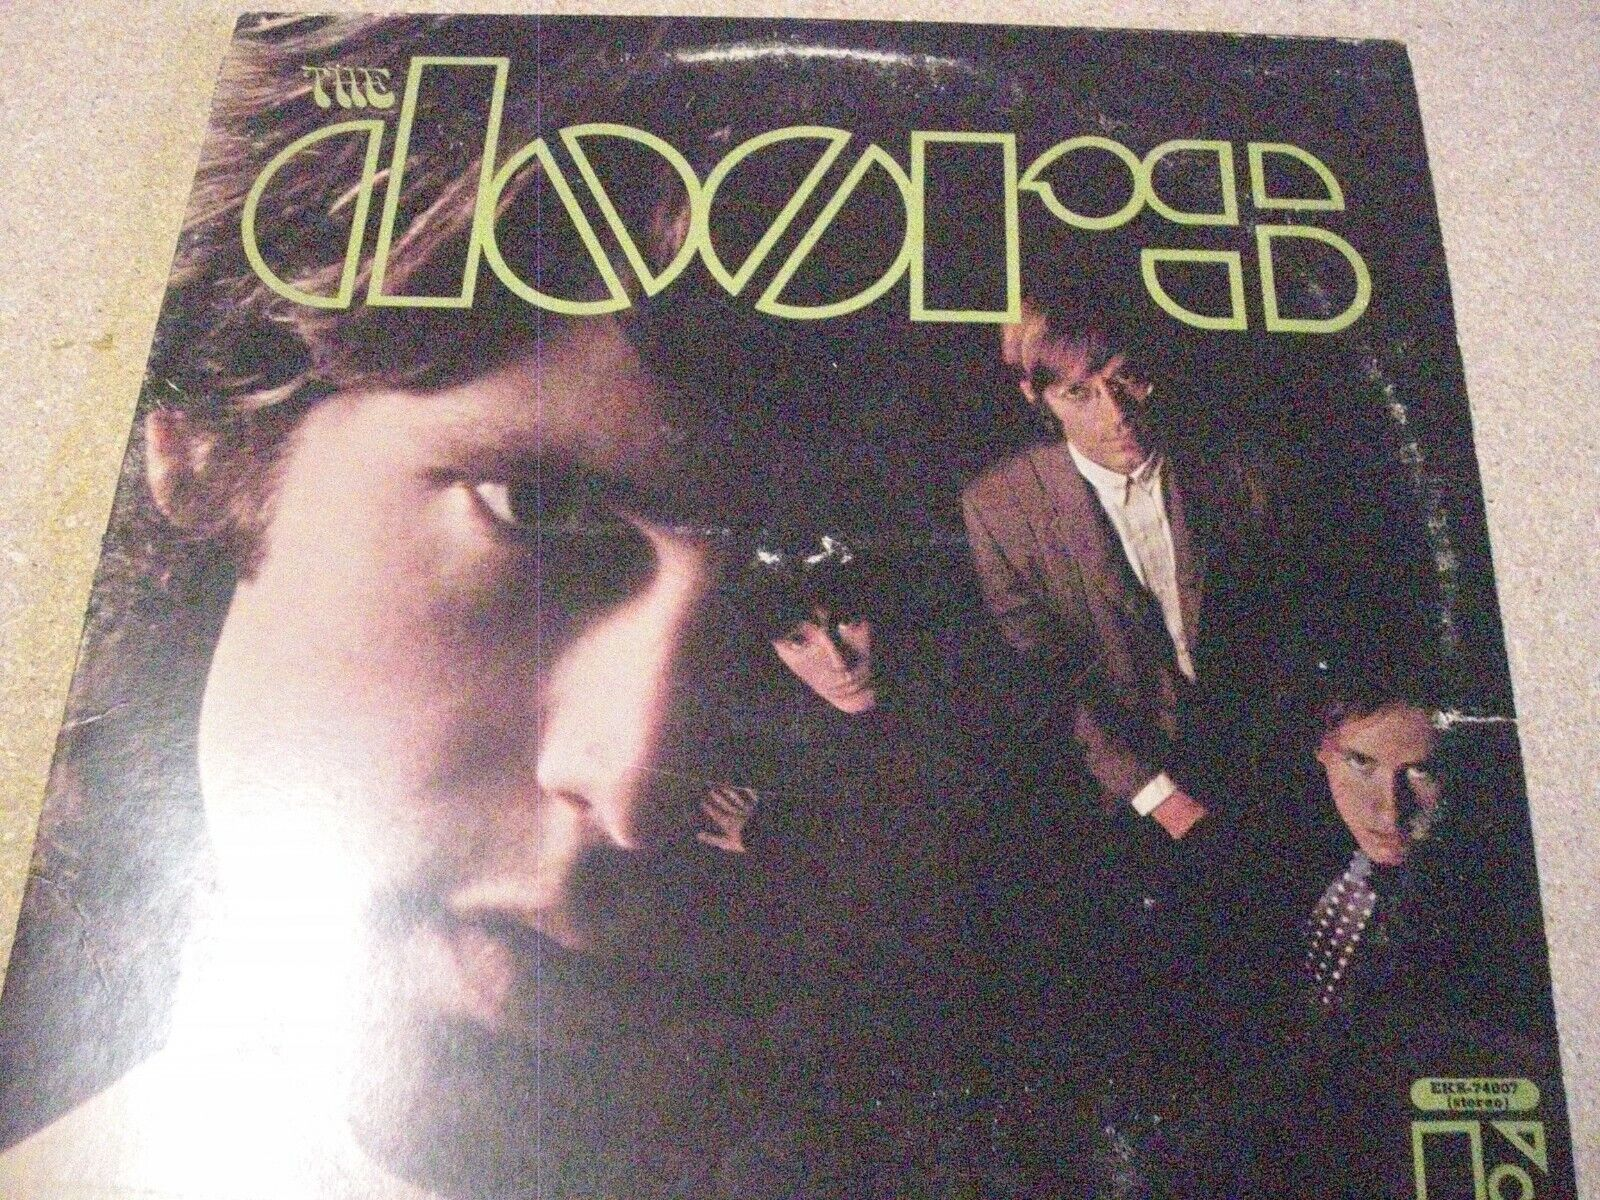 The DOORS Self Titled First Album 1967 In Excellent Condition - $27.00